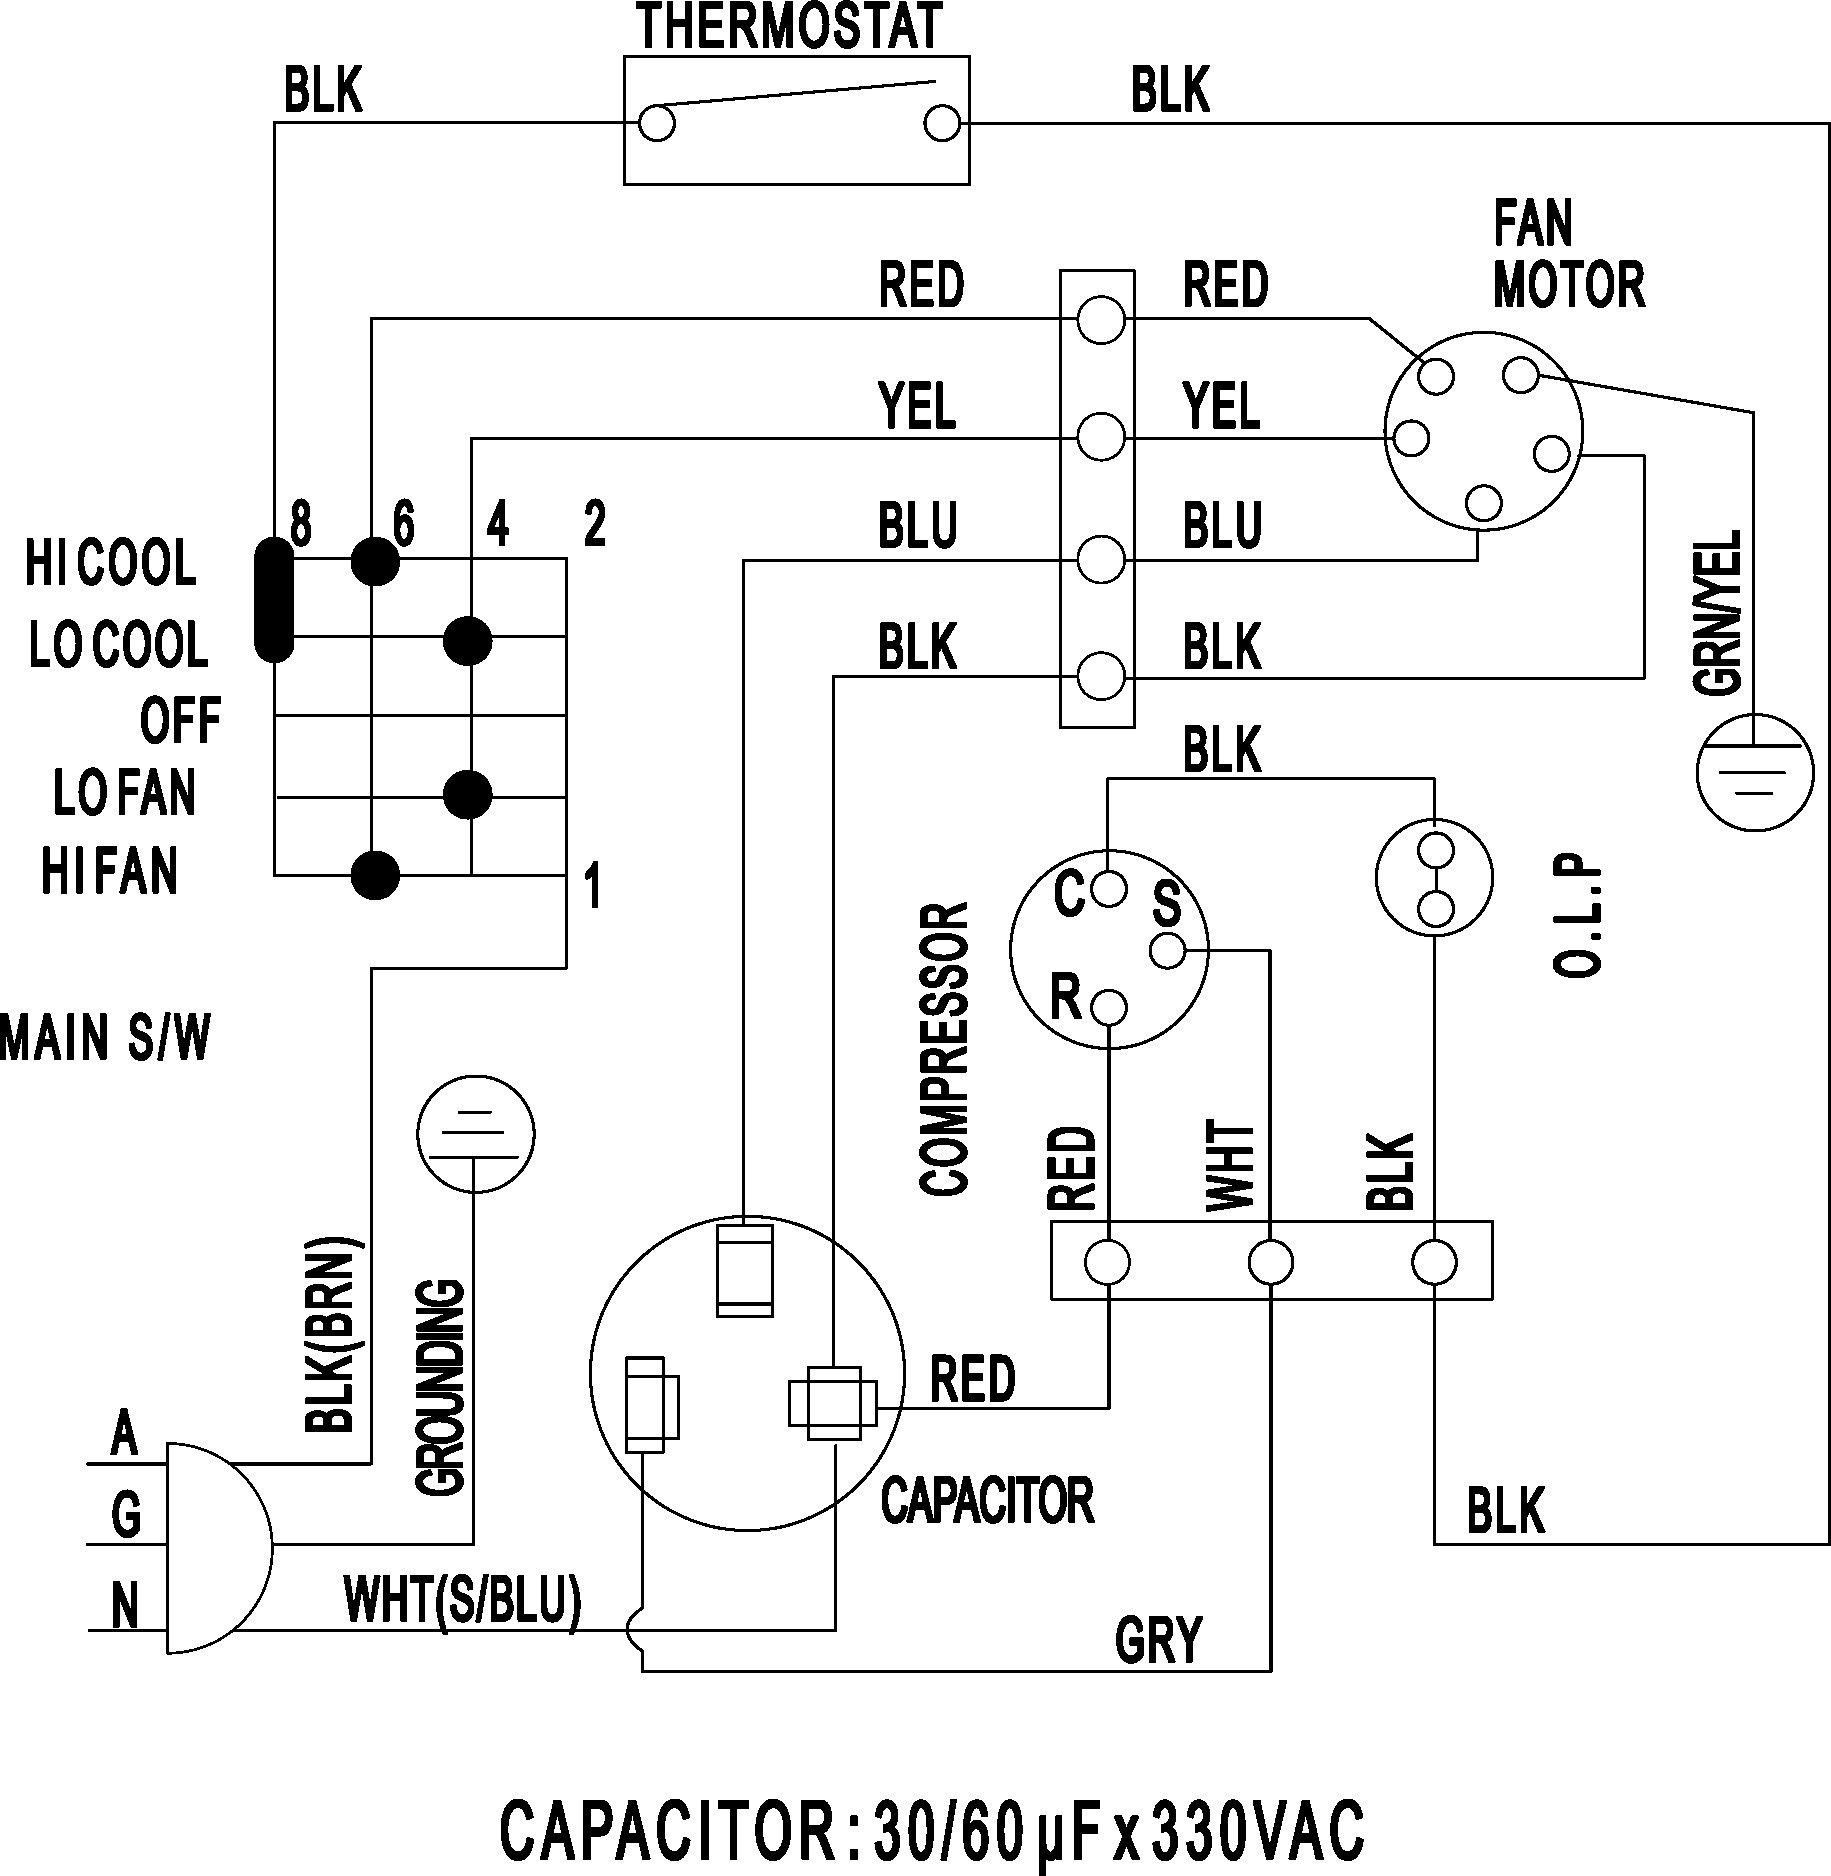 medium resolution of unique fan relay wiring diagram hvac diagram diagramsample diagramtemplate wiringdiagram diagramchart worksheet worksheettemplate